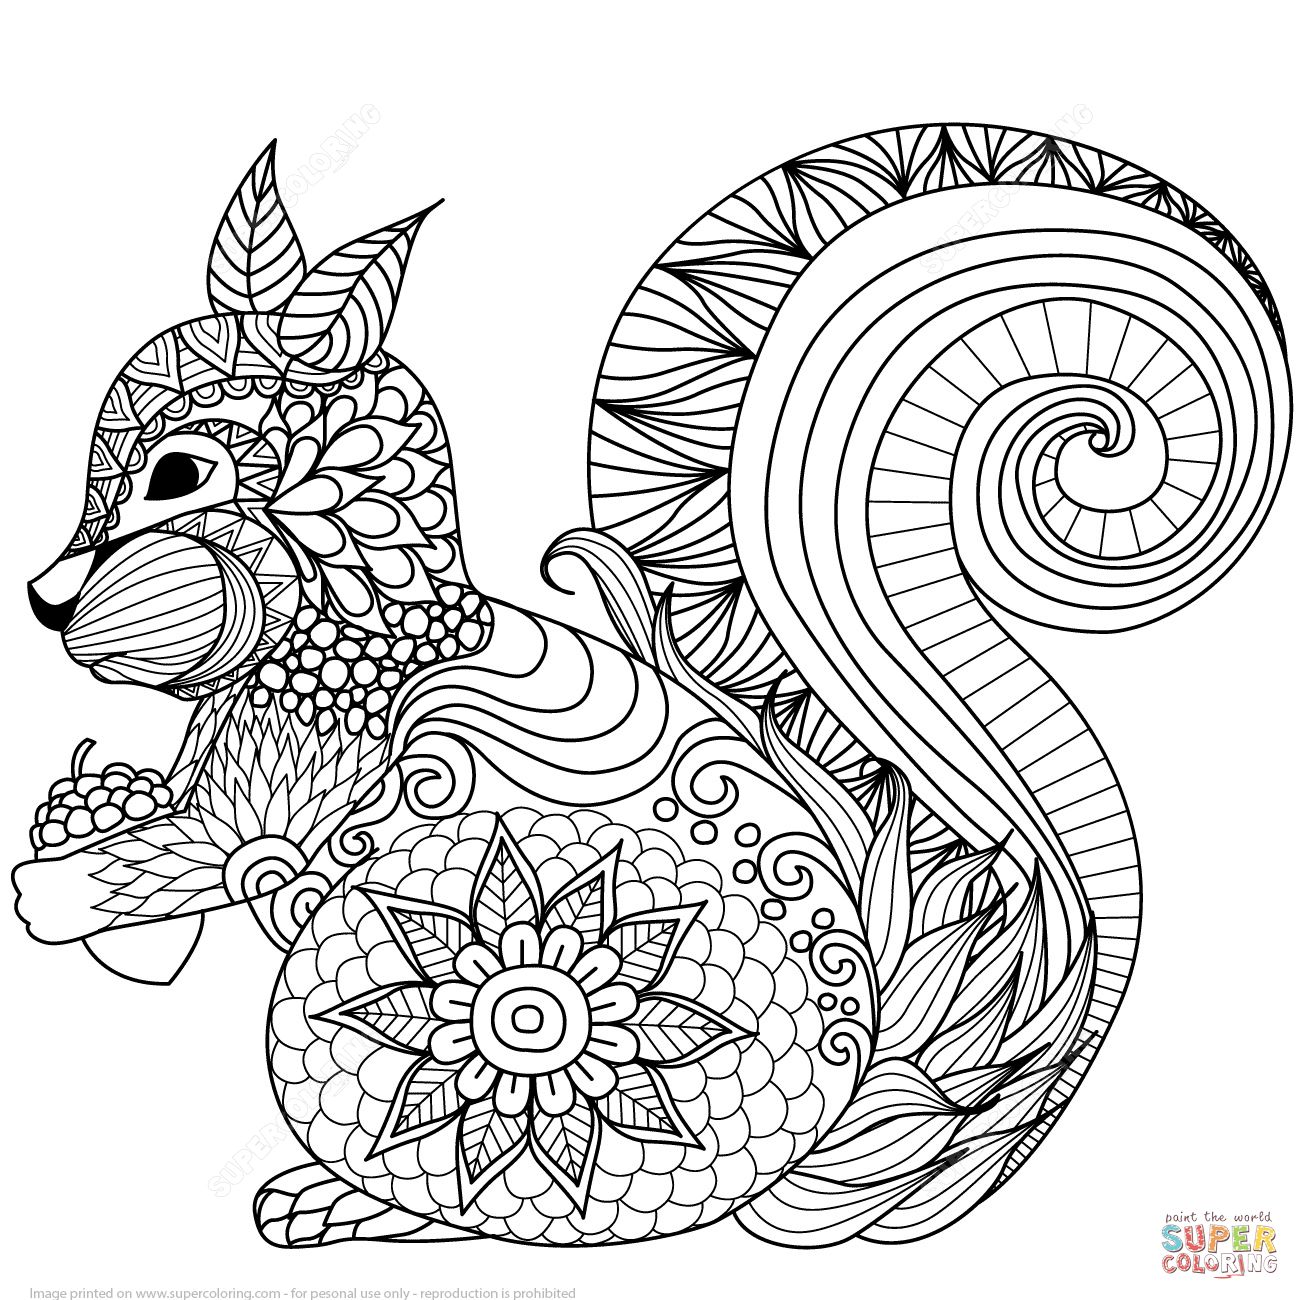 Lovely squirrel zentangle coloring page free printable for Printable coloring pages of squirrels